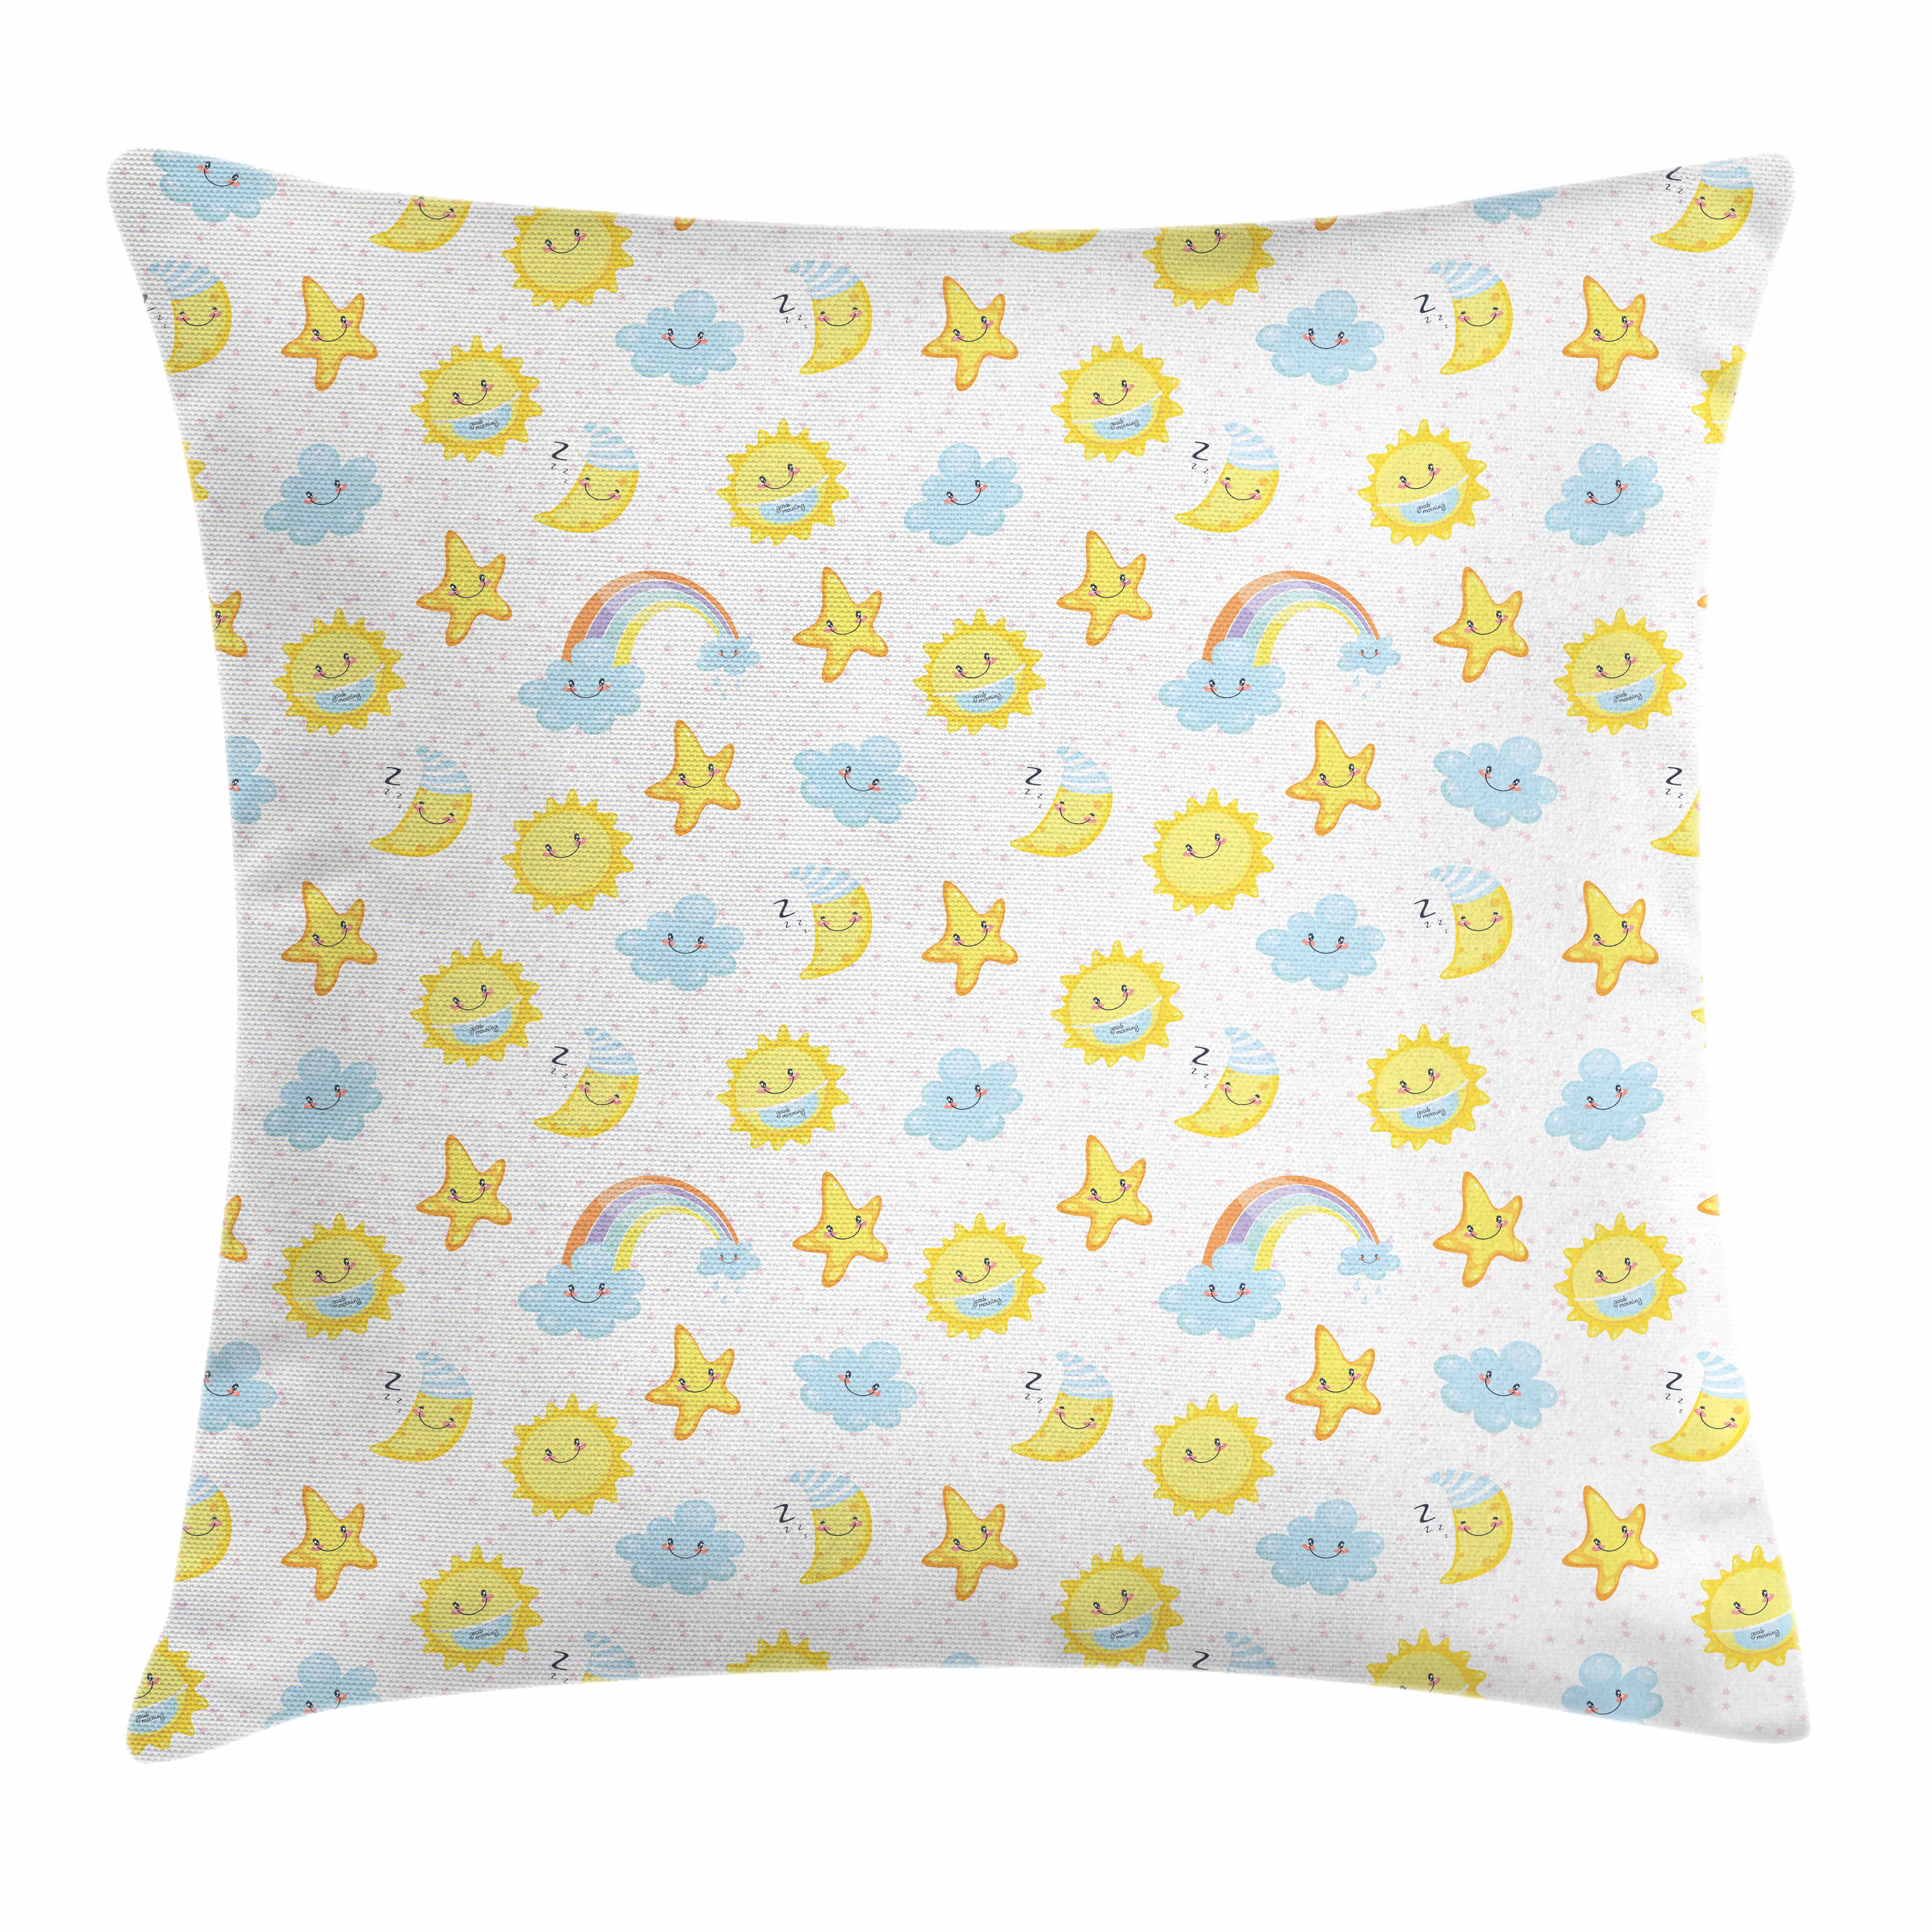 Kids Throw Pillow Cushion Cover, Happy Smiling Moon and Stars Good Morning and Night Rainbows Funny Clouds, Decorative Square Accent Pillow Case, 16 X 16 Inches, Yellow Baby Blue Pink, by Ambesonne